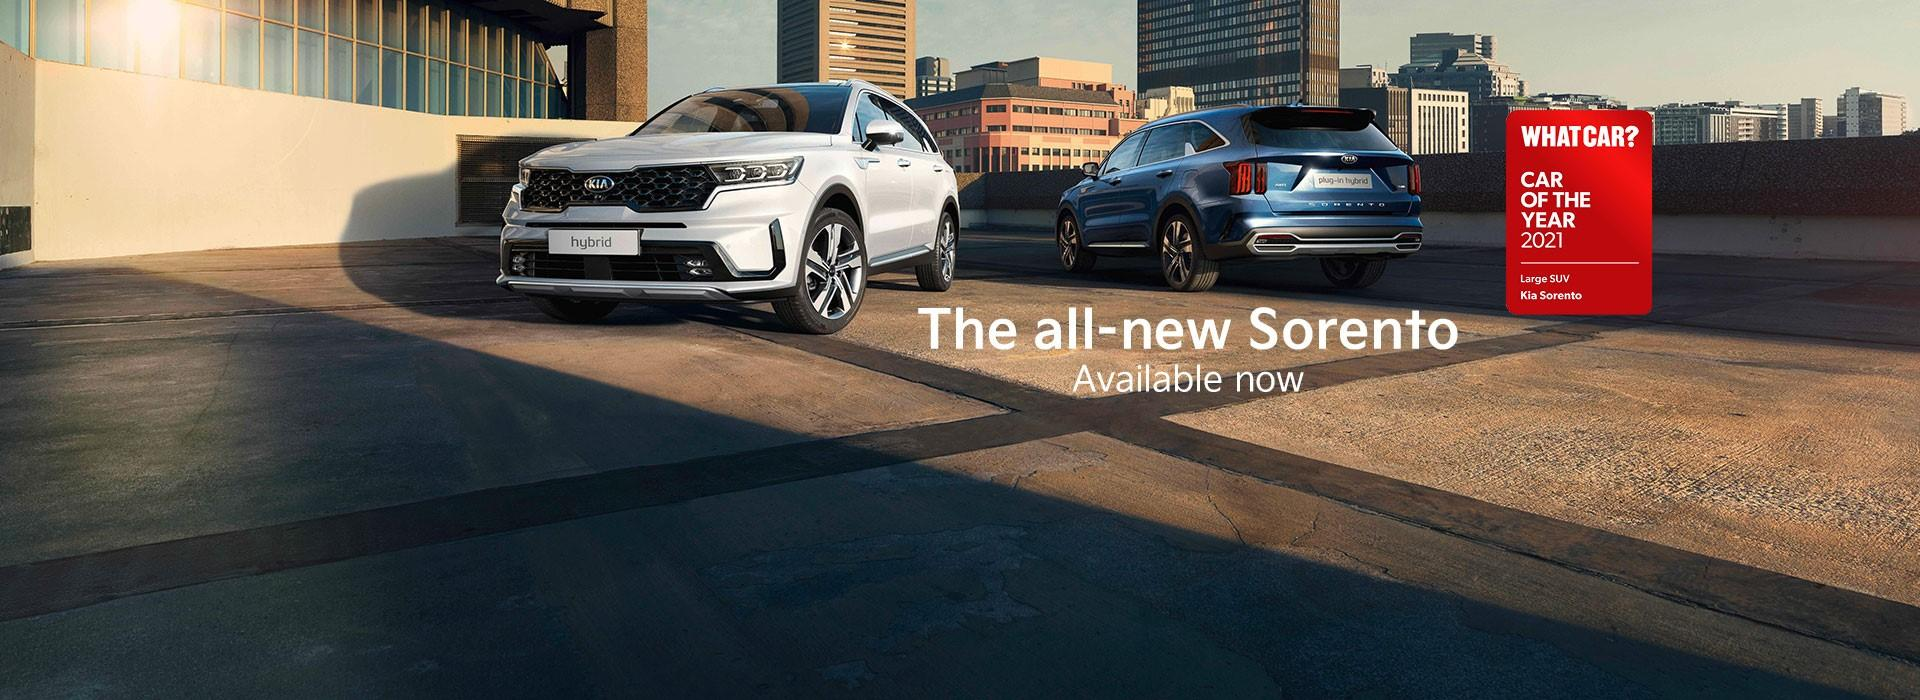 All-New Sorento now available